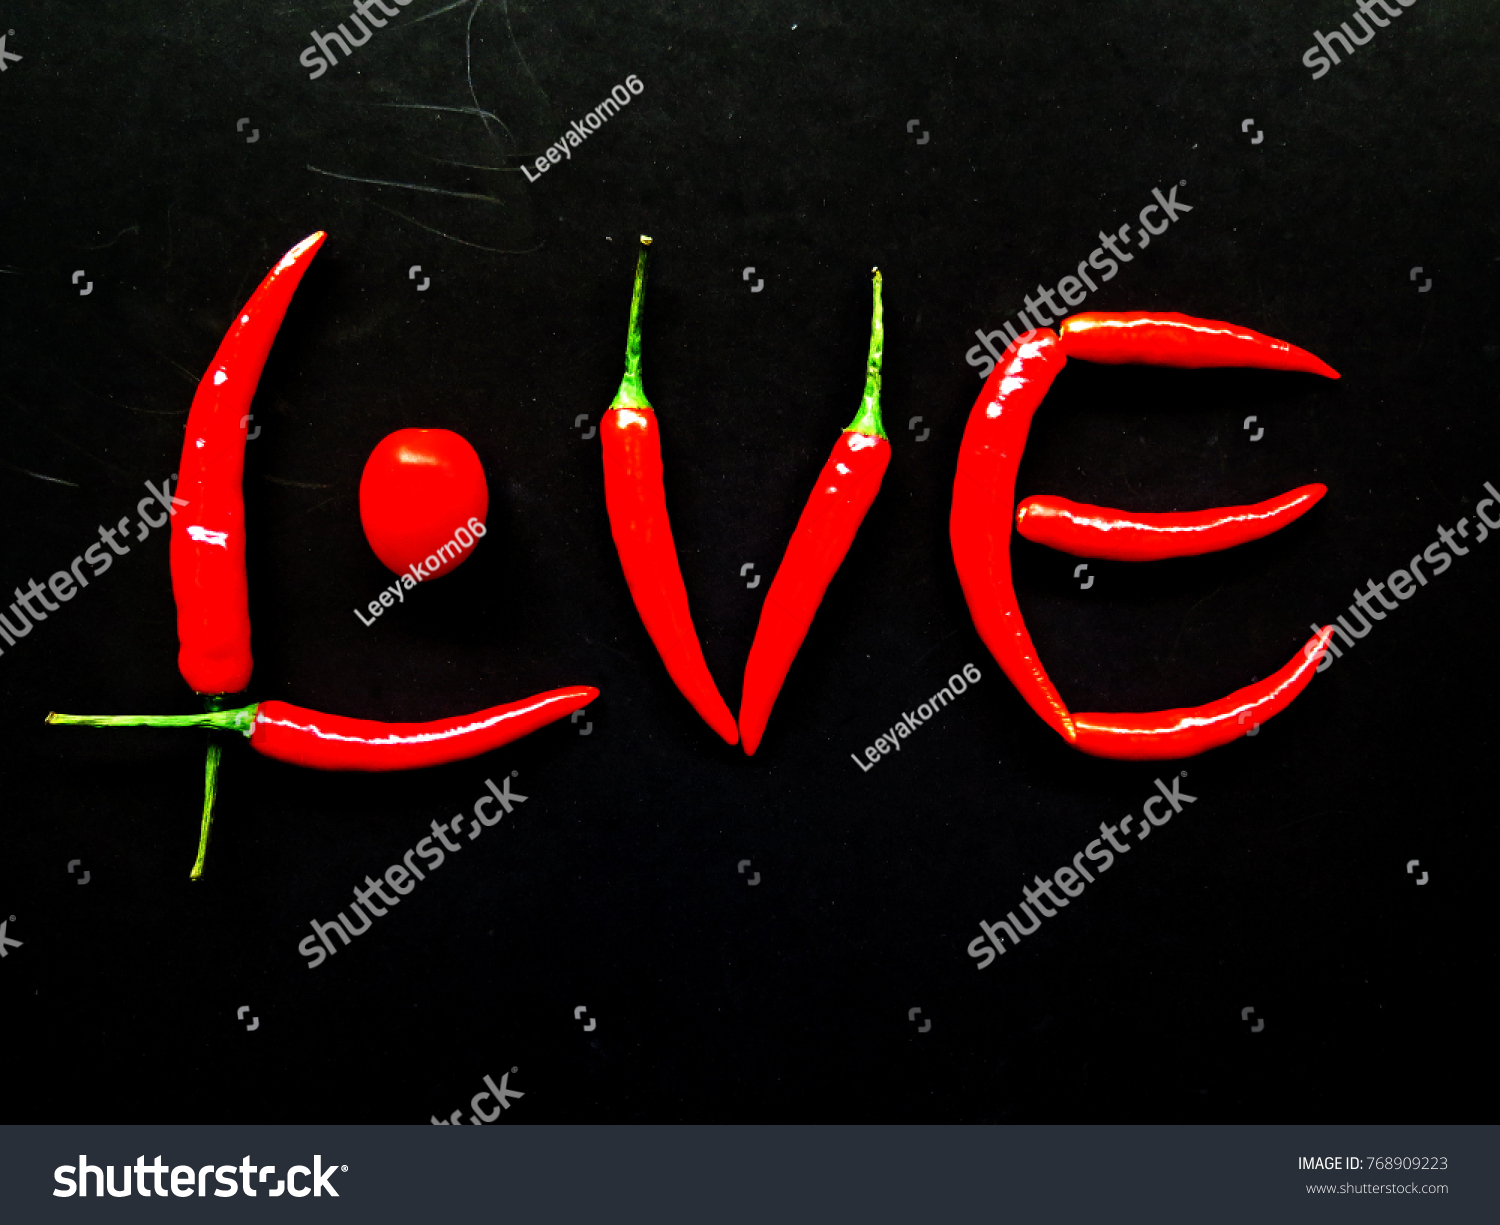 Red Pepper Chili Sherry Tomato Design Stock Photo (Royalty Free ...